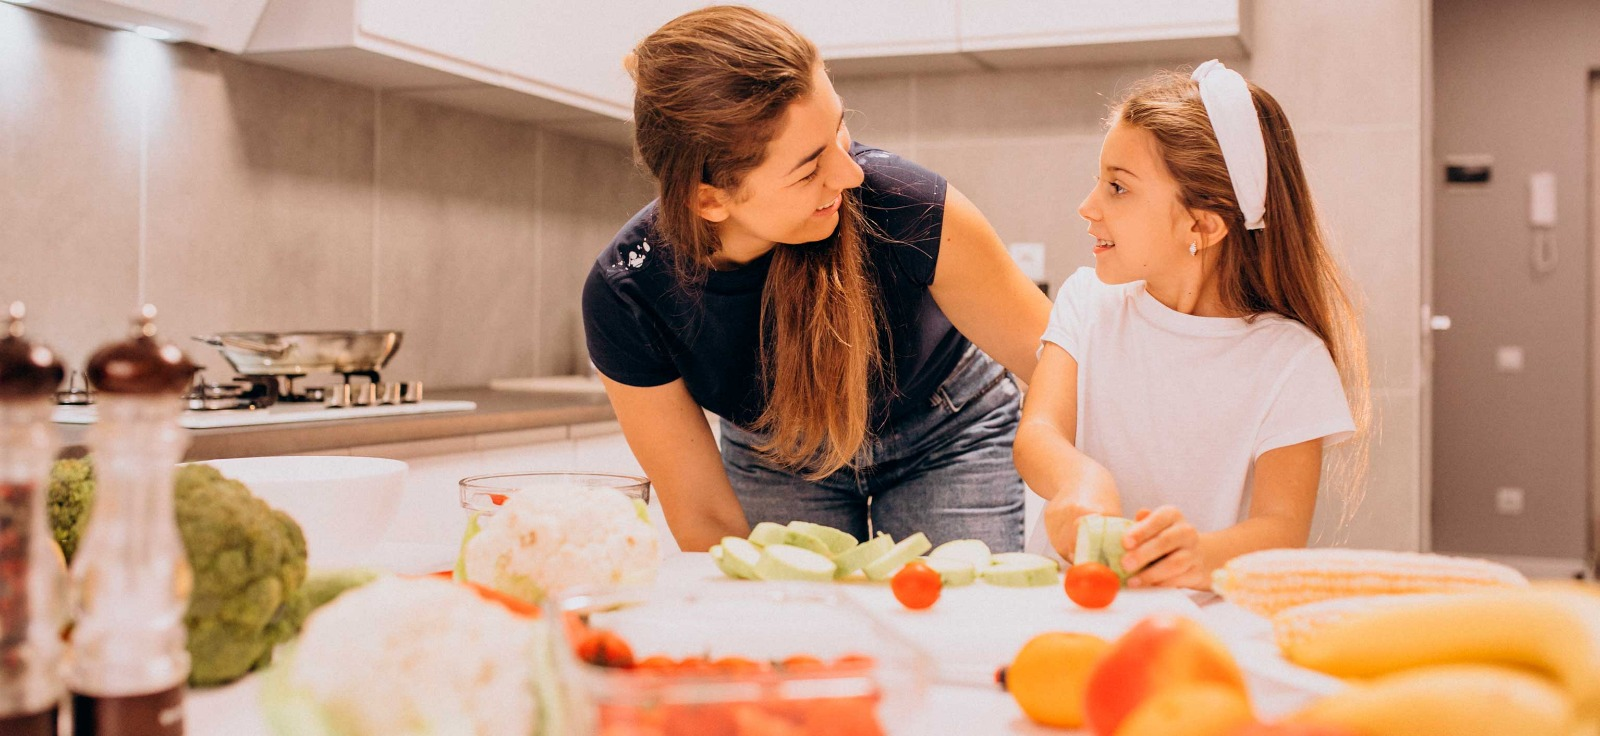 3 simple tips for healthy eating in the family